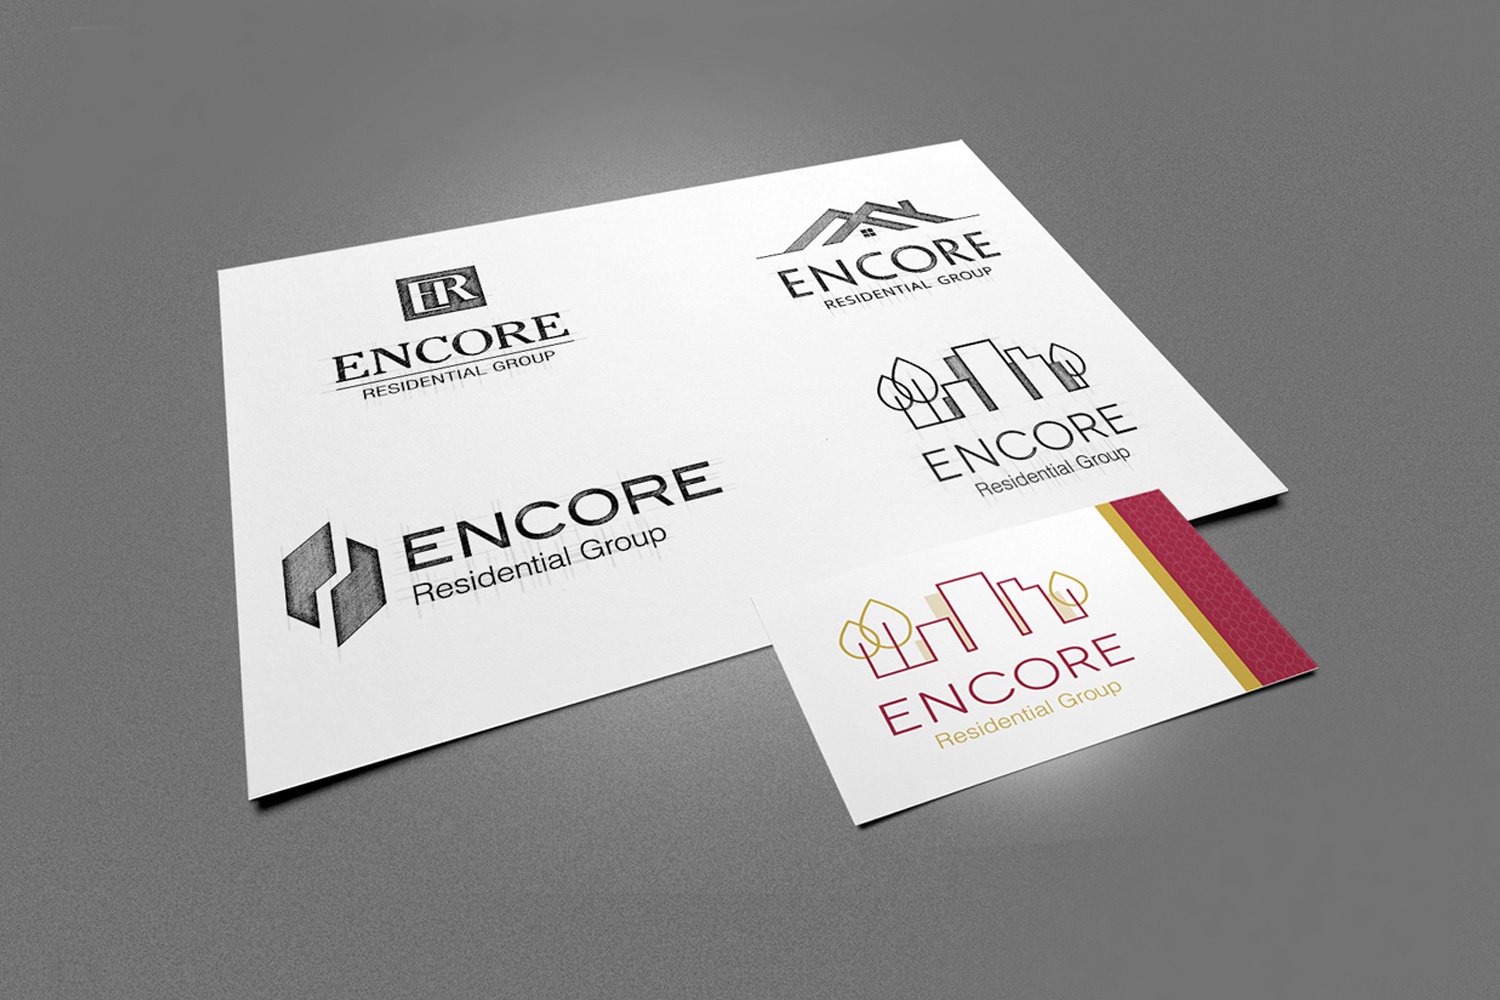 Encore Residential Group